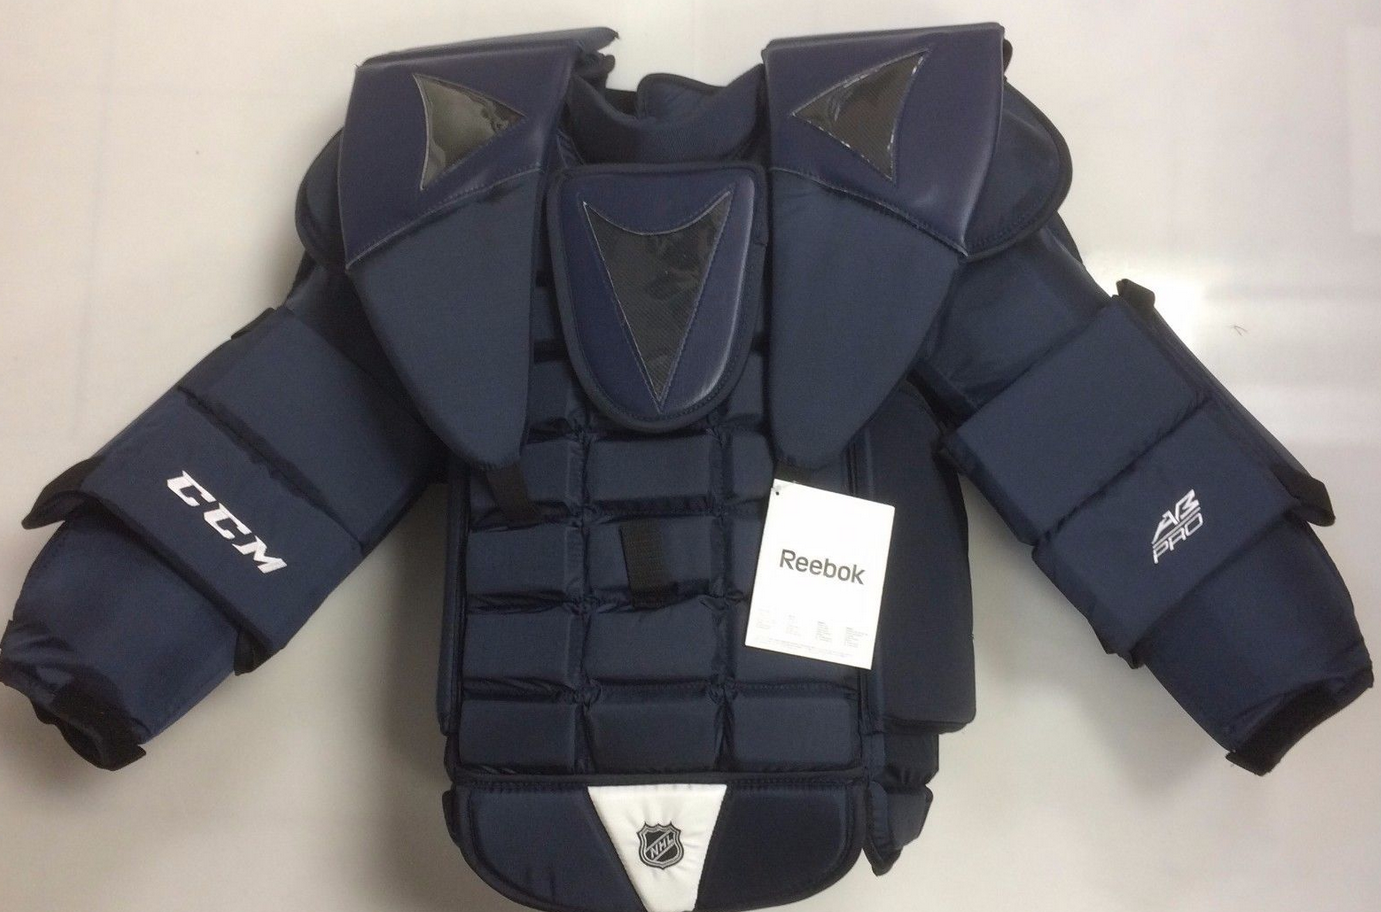 6a6a42b2932 NHL Pro Chest Protector Database - Page 3 - Chest Protectors - C As ...